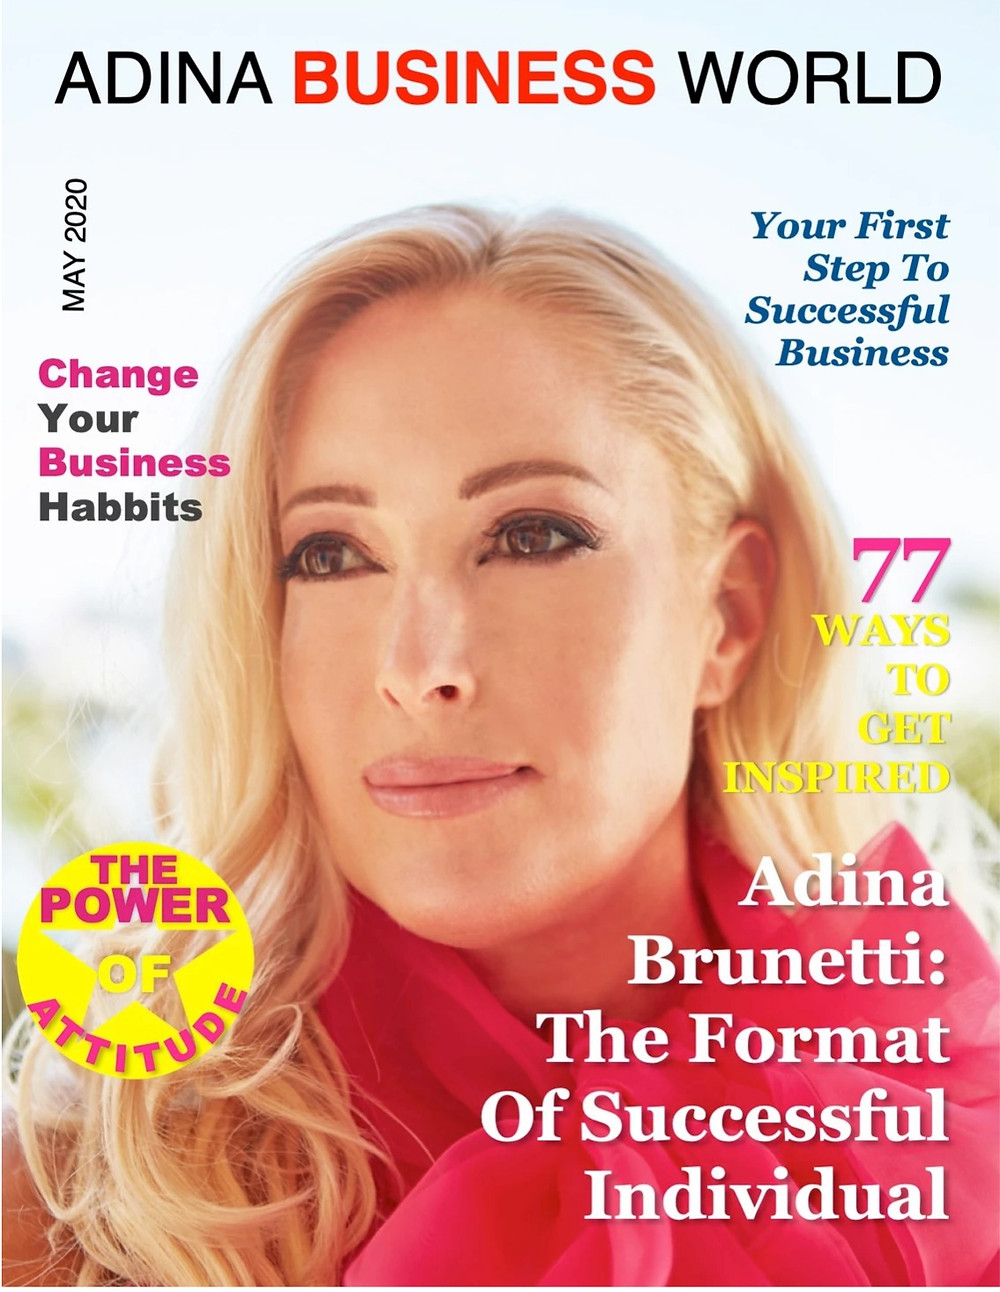 Adina Brunetti: Adina Business World